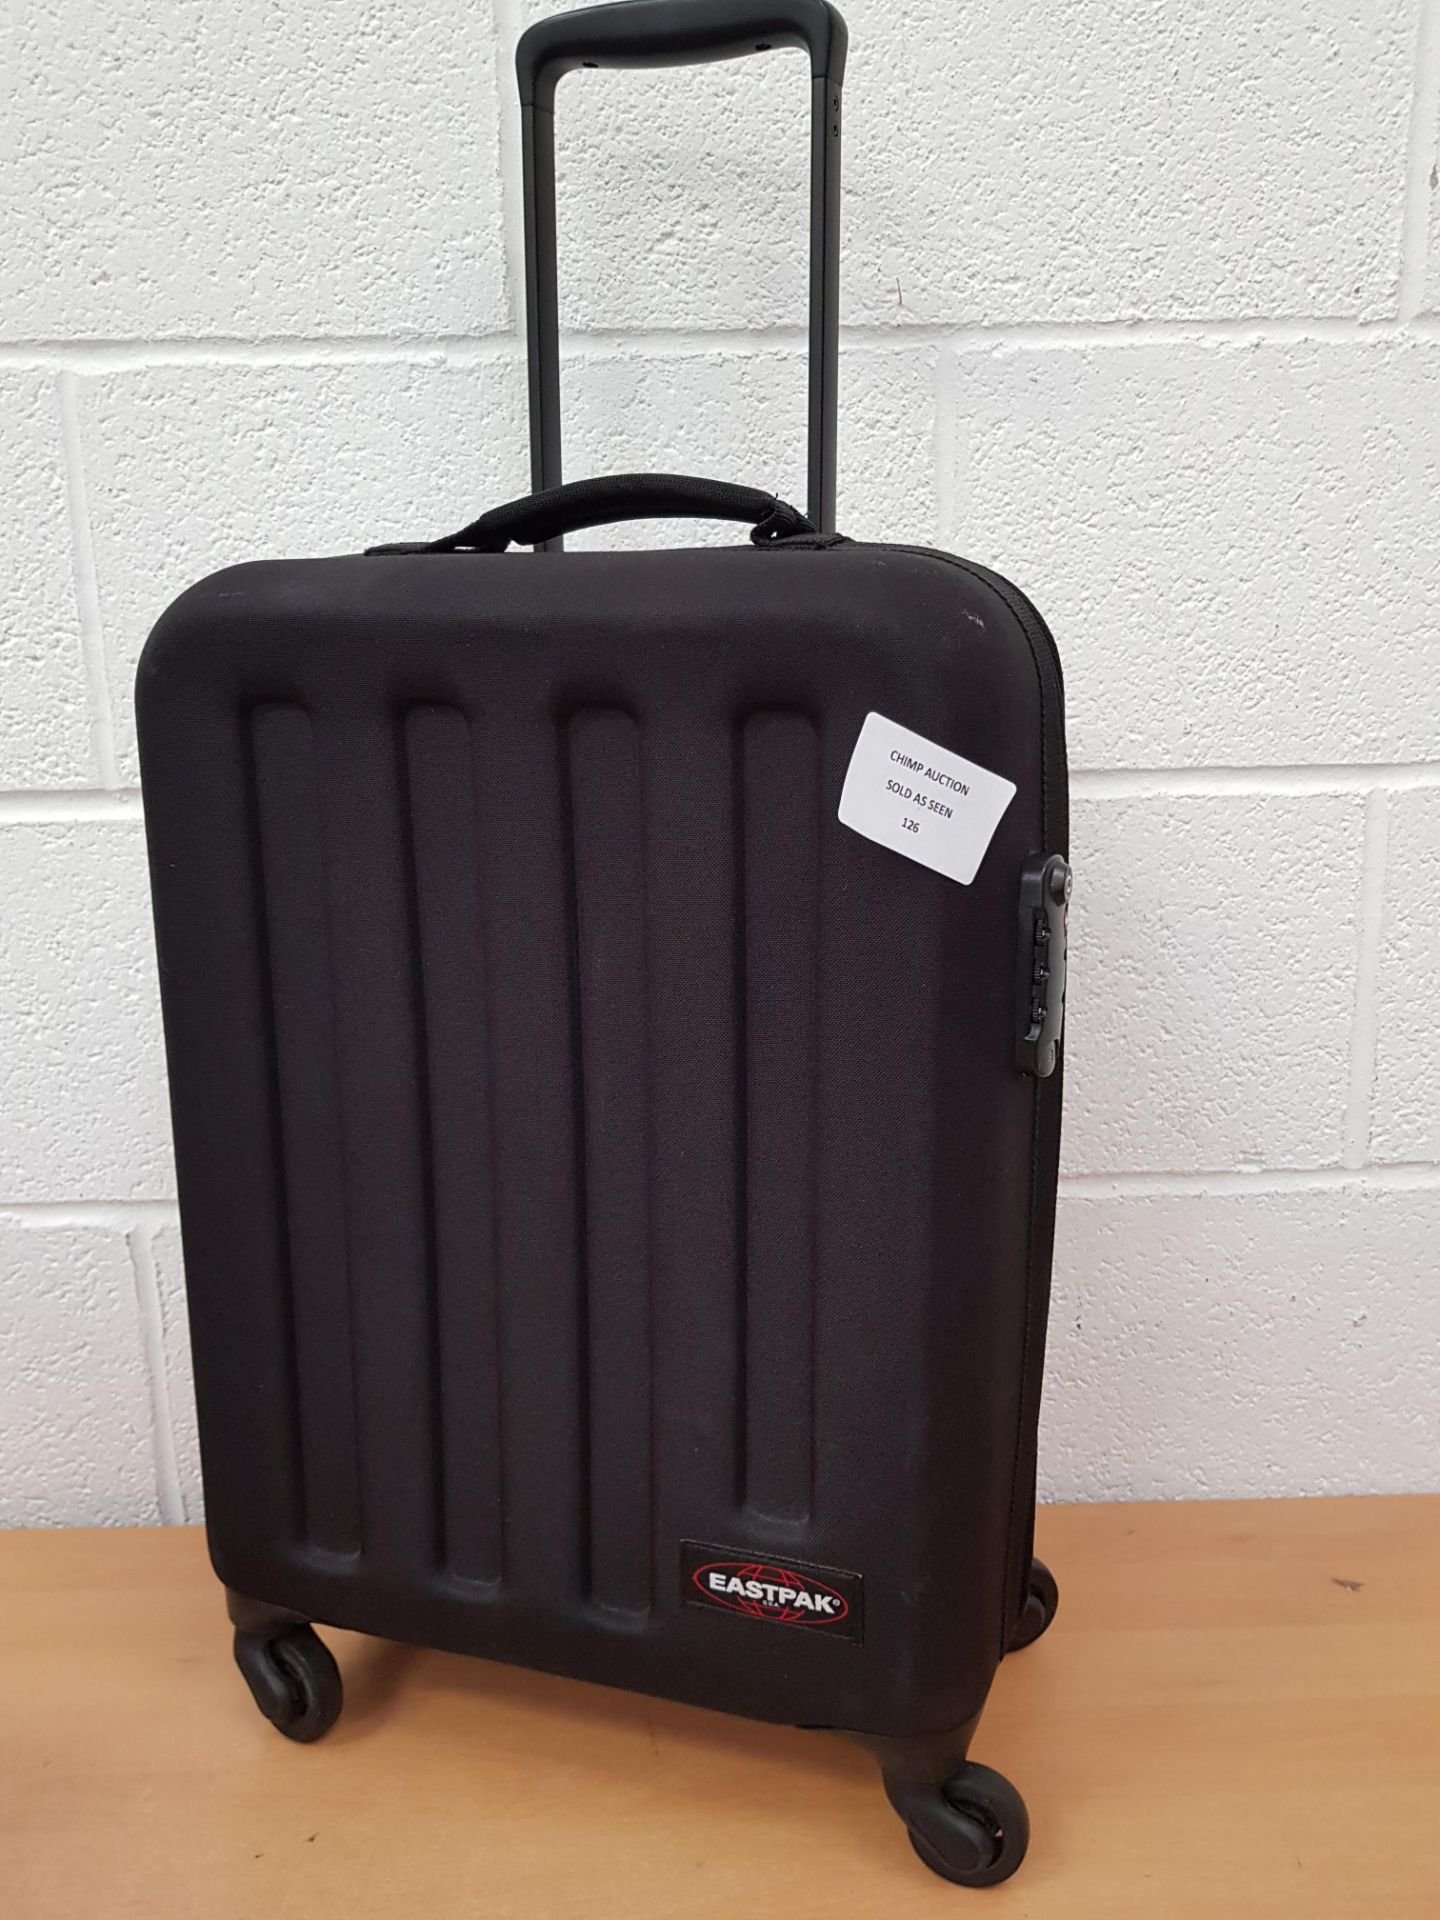 Lotto 126 - EastPak Travel Luggage Bag